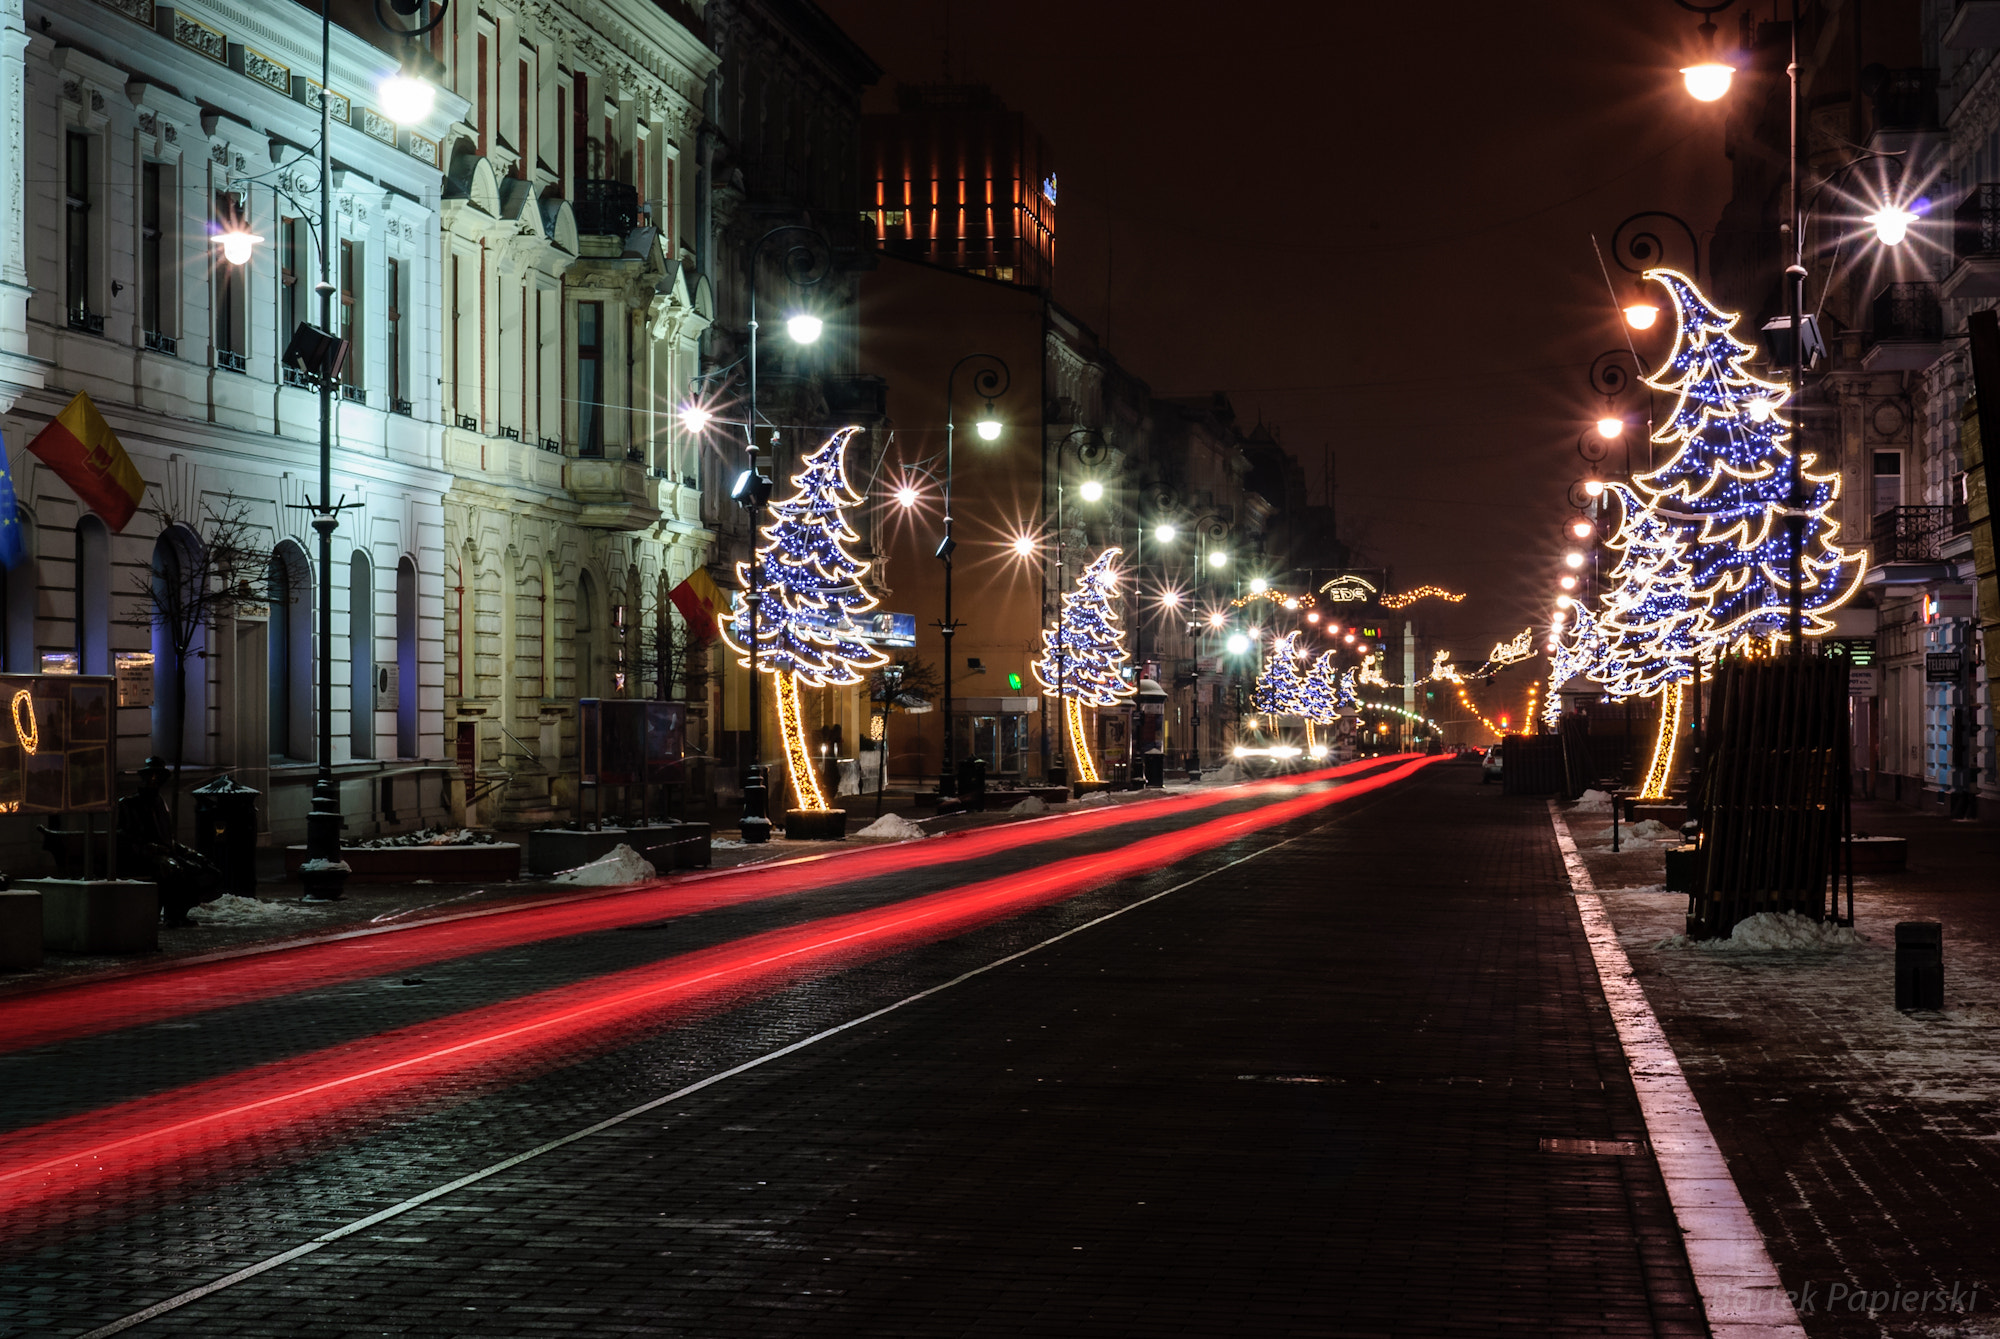 Photograph XMas in the city by Bartek Papierski on 500px